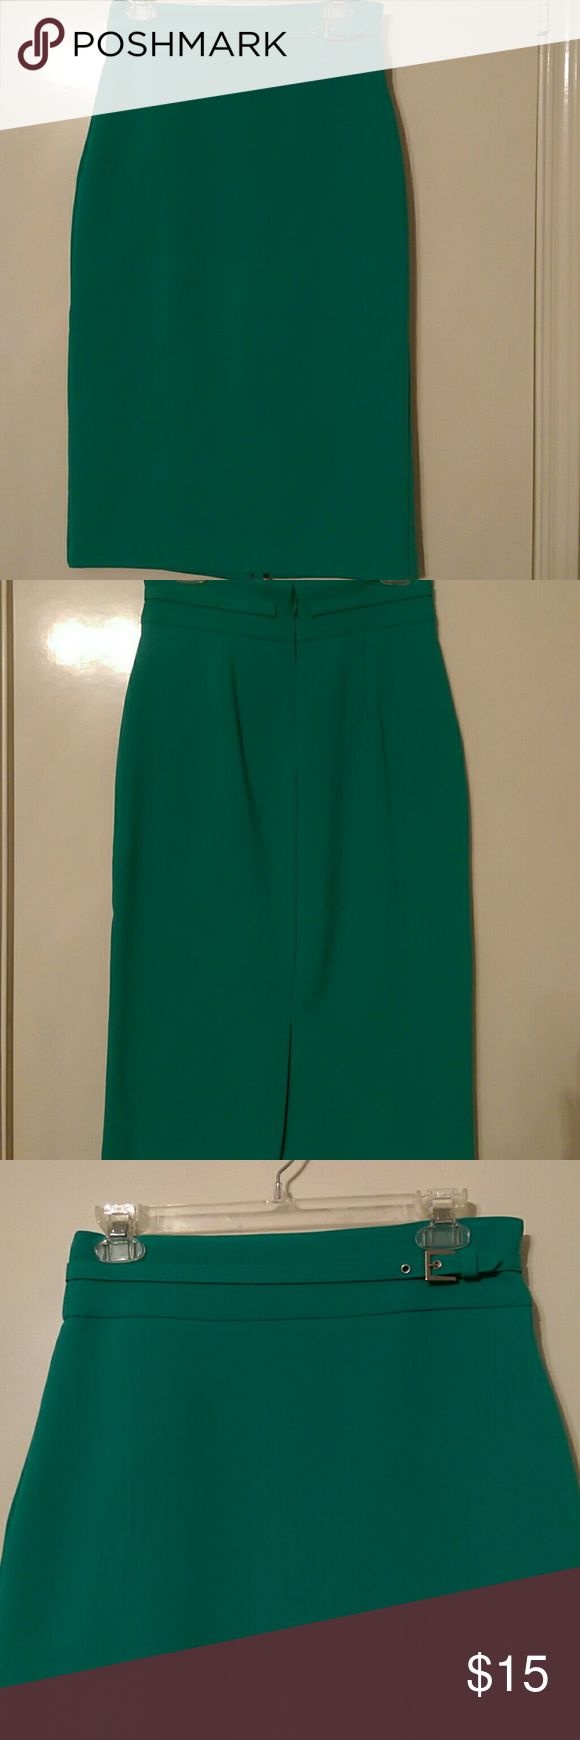 Women's Green Pencil Skirt Women's New York & Co. Green Pencil Skirt. Skirt is belted with a back split. Skirt is in excellent condition. New York & Company Skirts Pencil